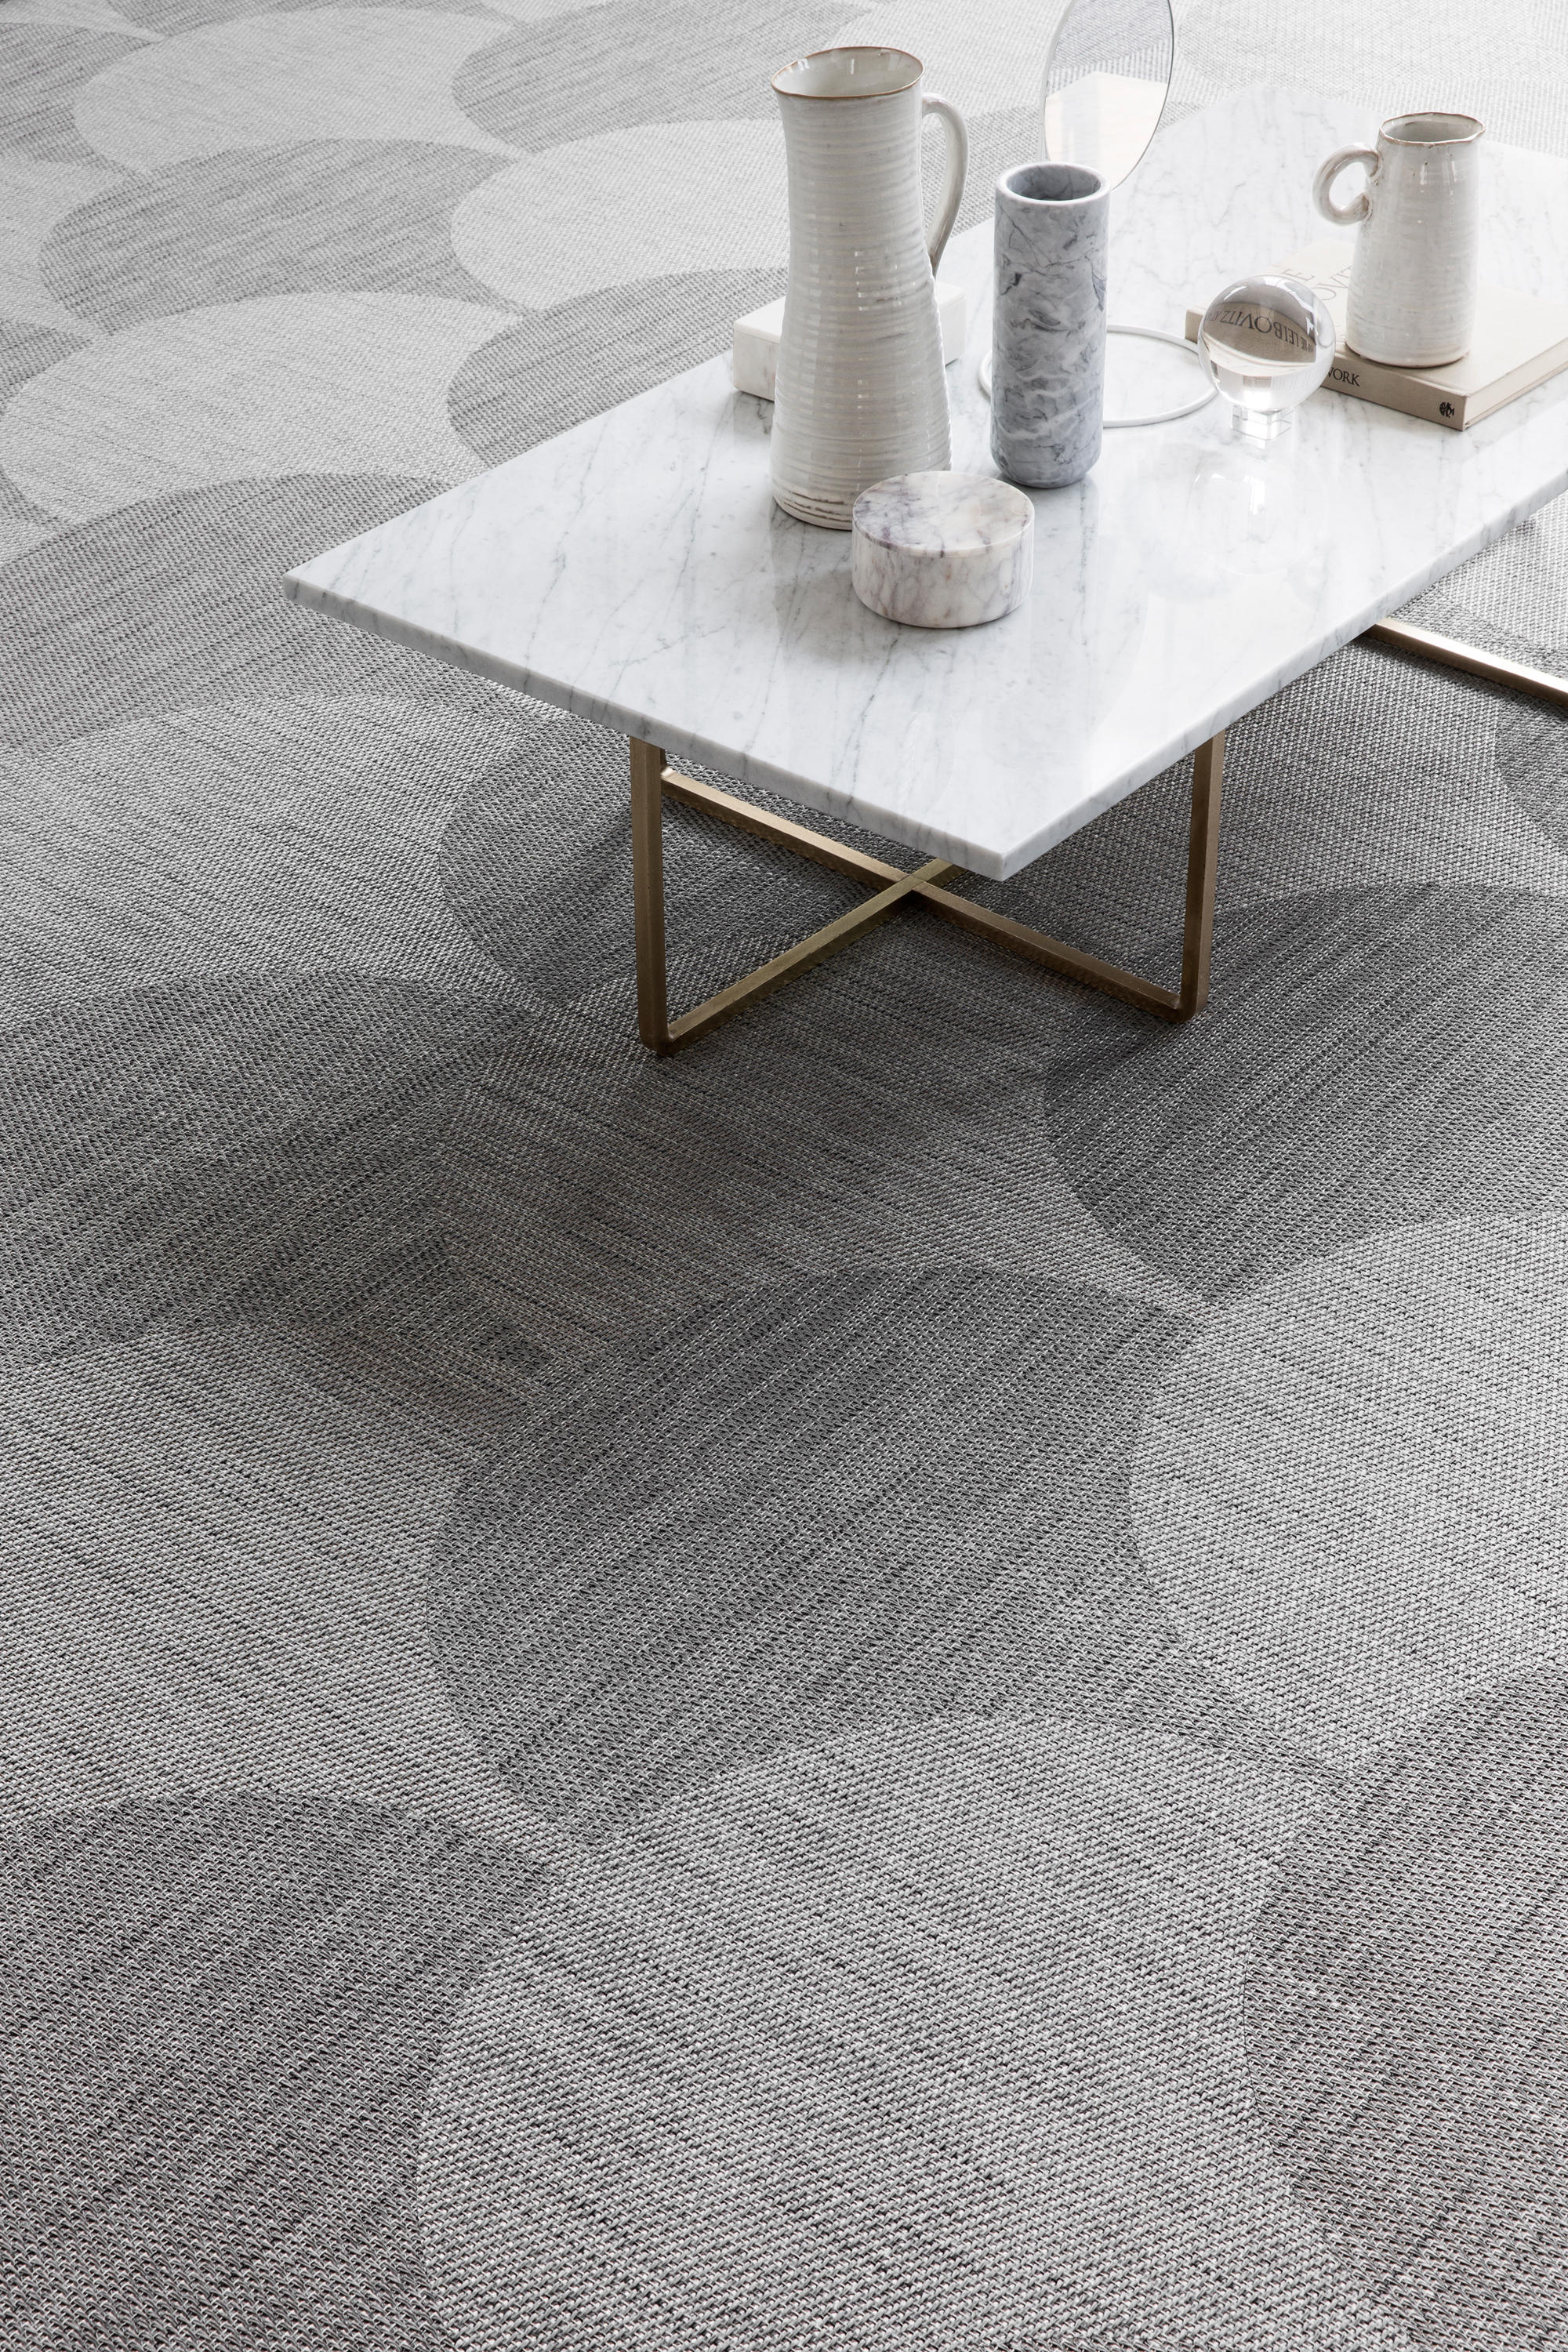 Flow Alga Silver Carpet Tiles From Bolon Architonic